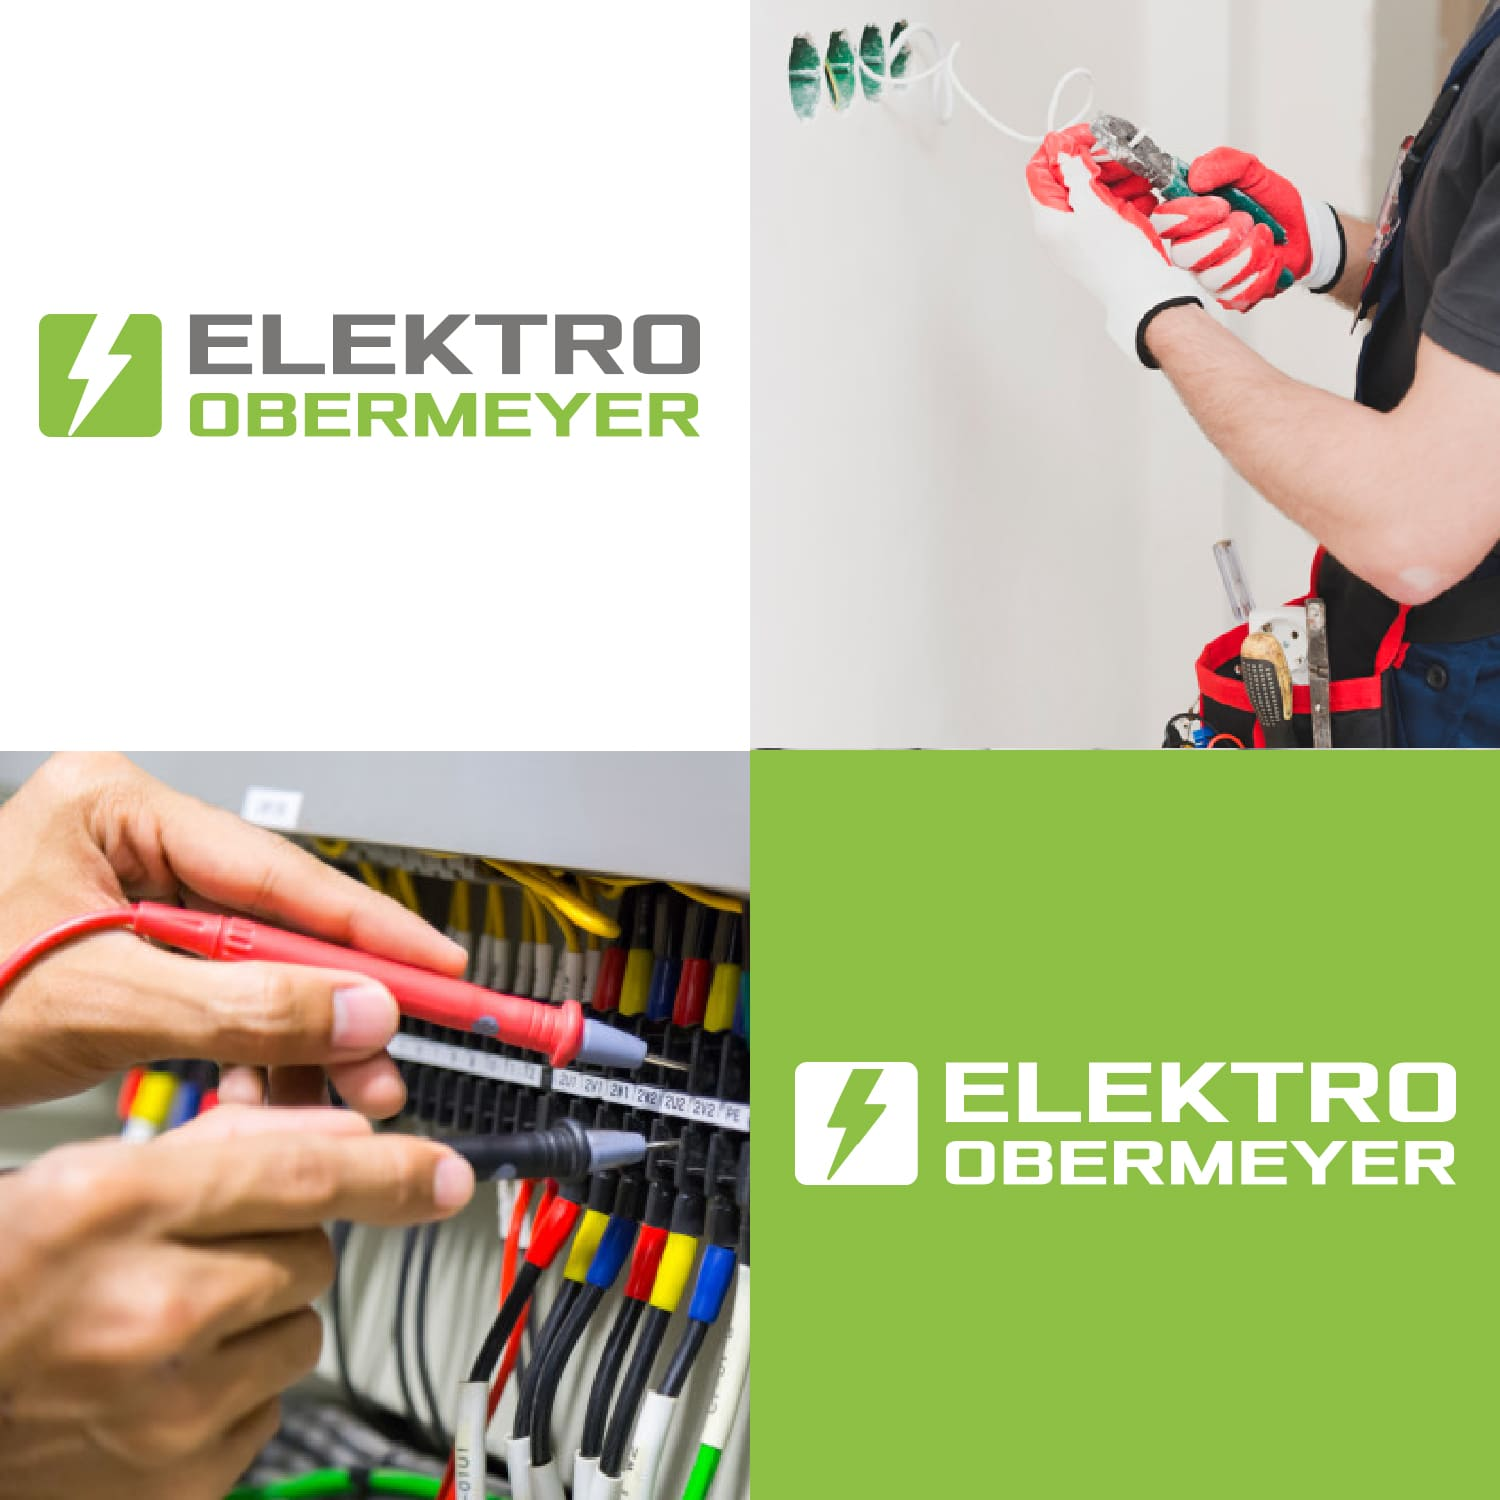 Logodesign Elektro Obermeyer in Düsseldorf